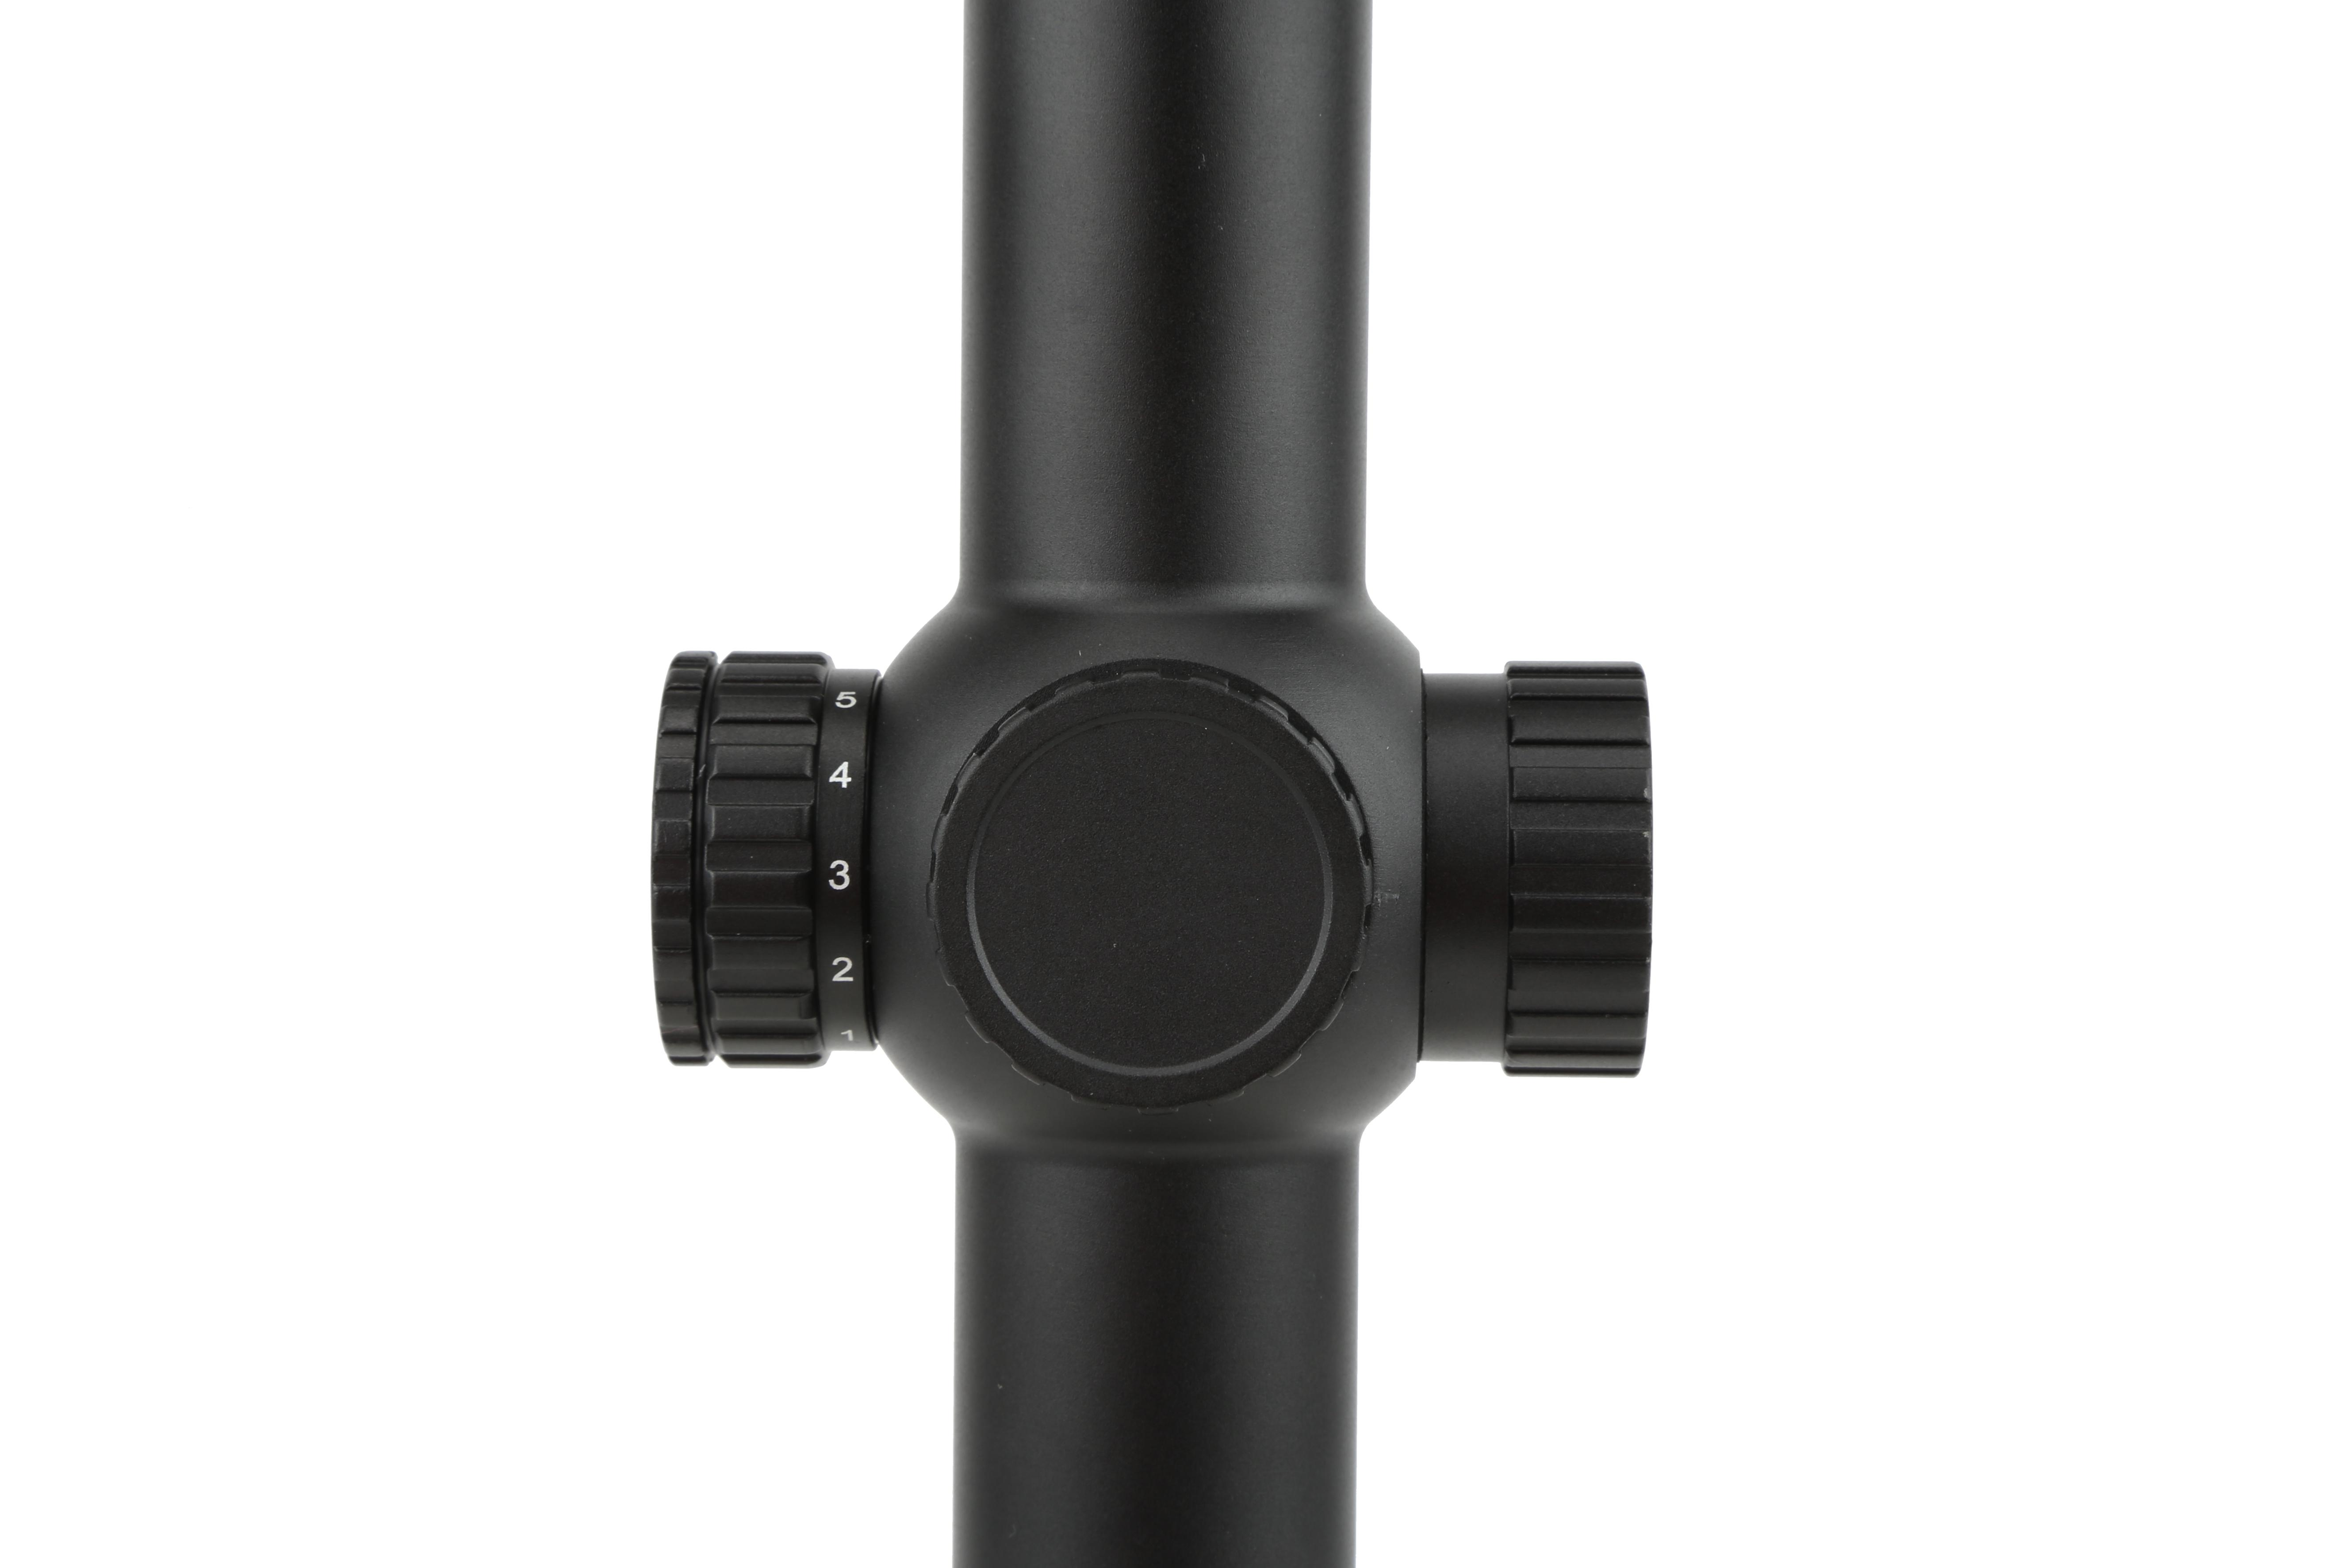 The 1-8x ACSS optic from Primary Arms with illuminated reticle is designed for close to medium range engagements